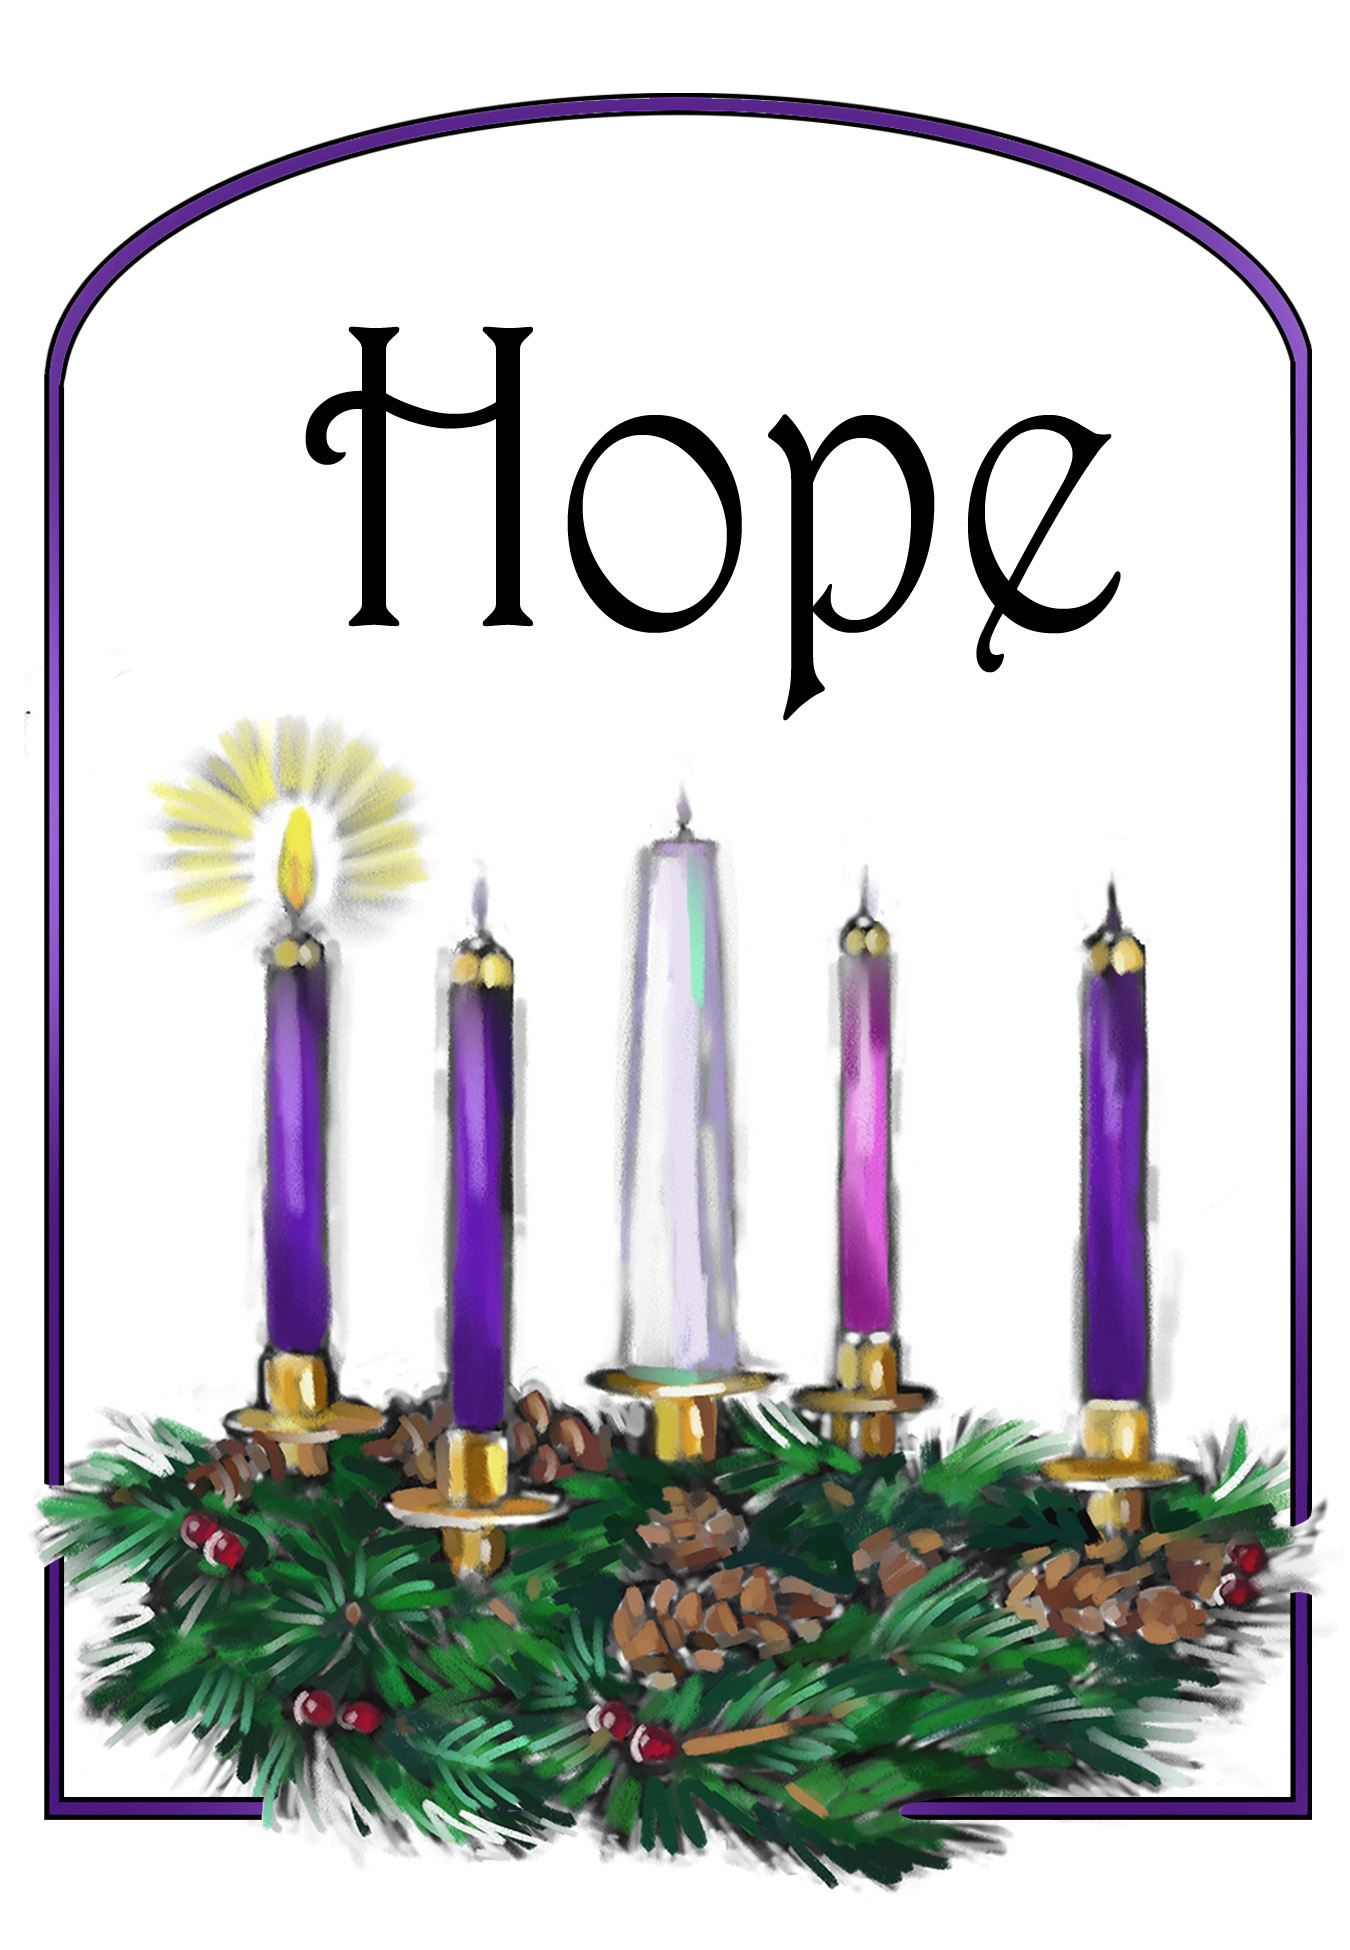 Advent clipart holiday for free download and use images in.